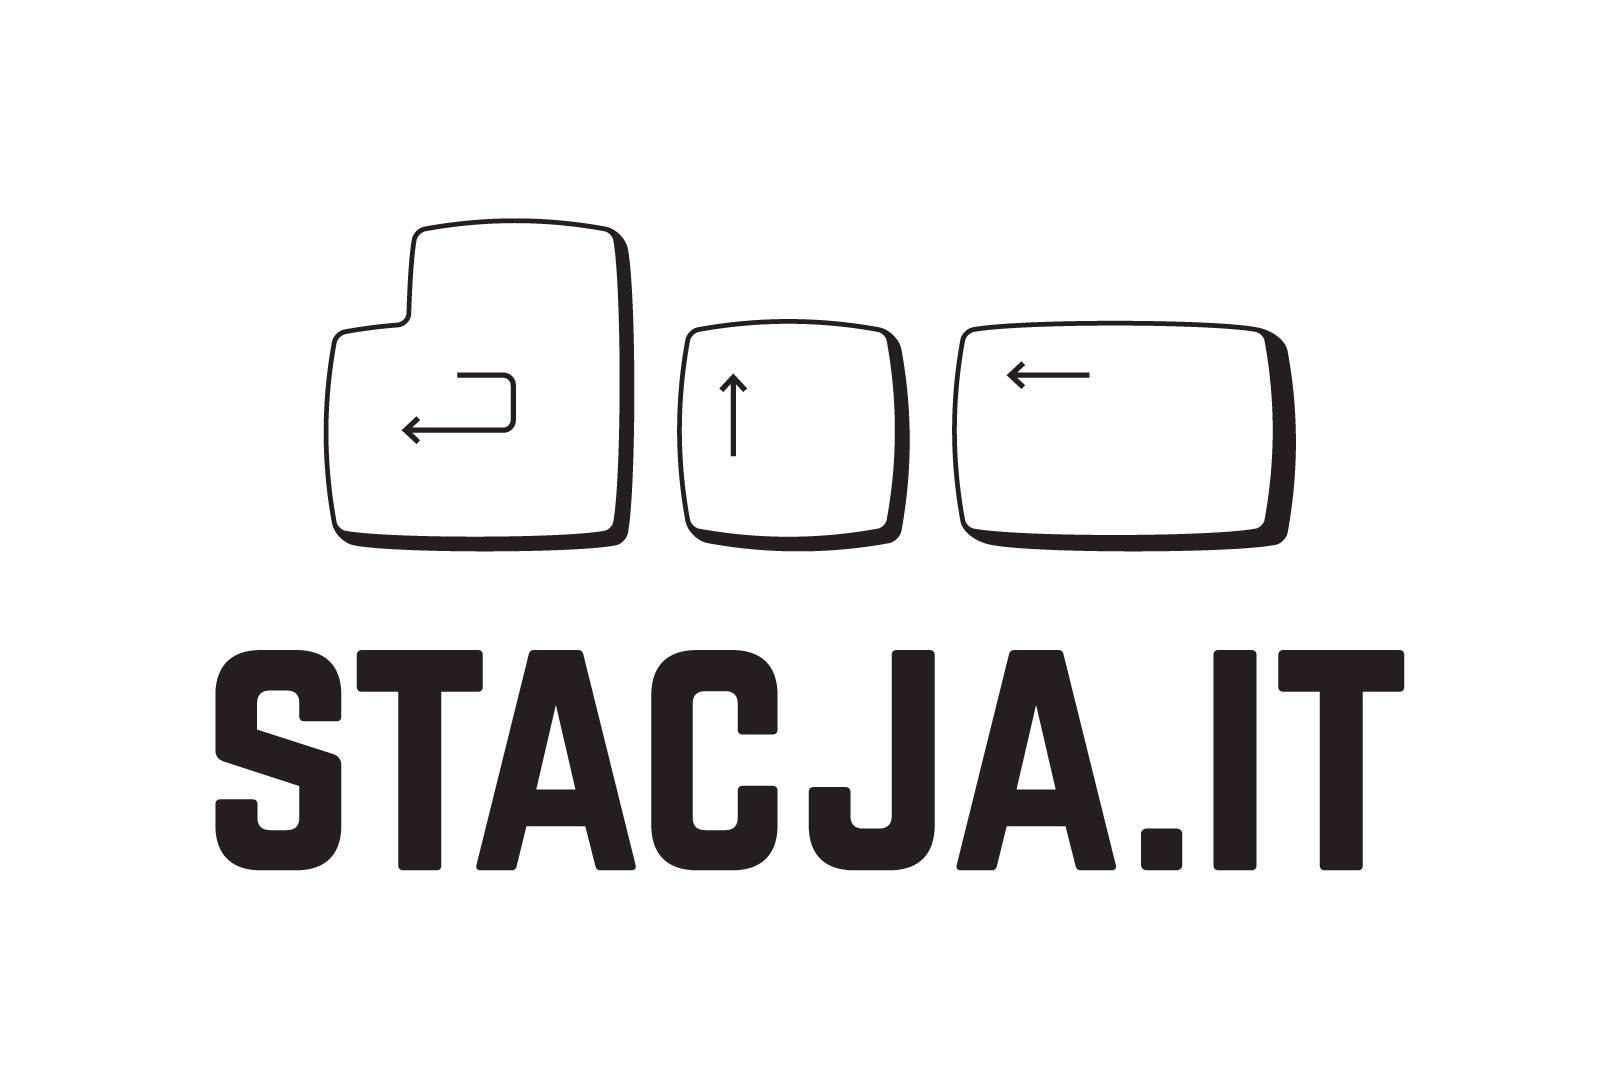 Logo of Stacja IT